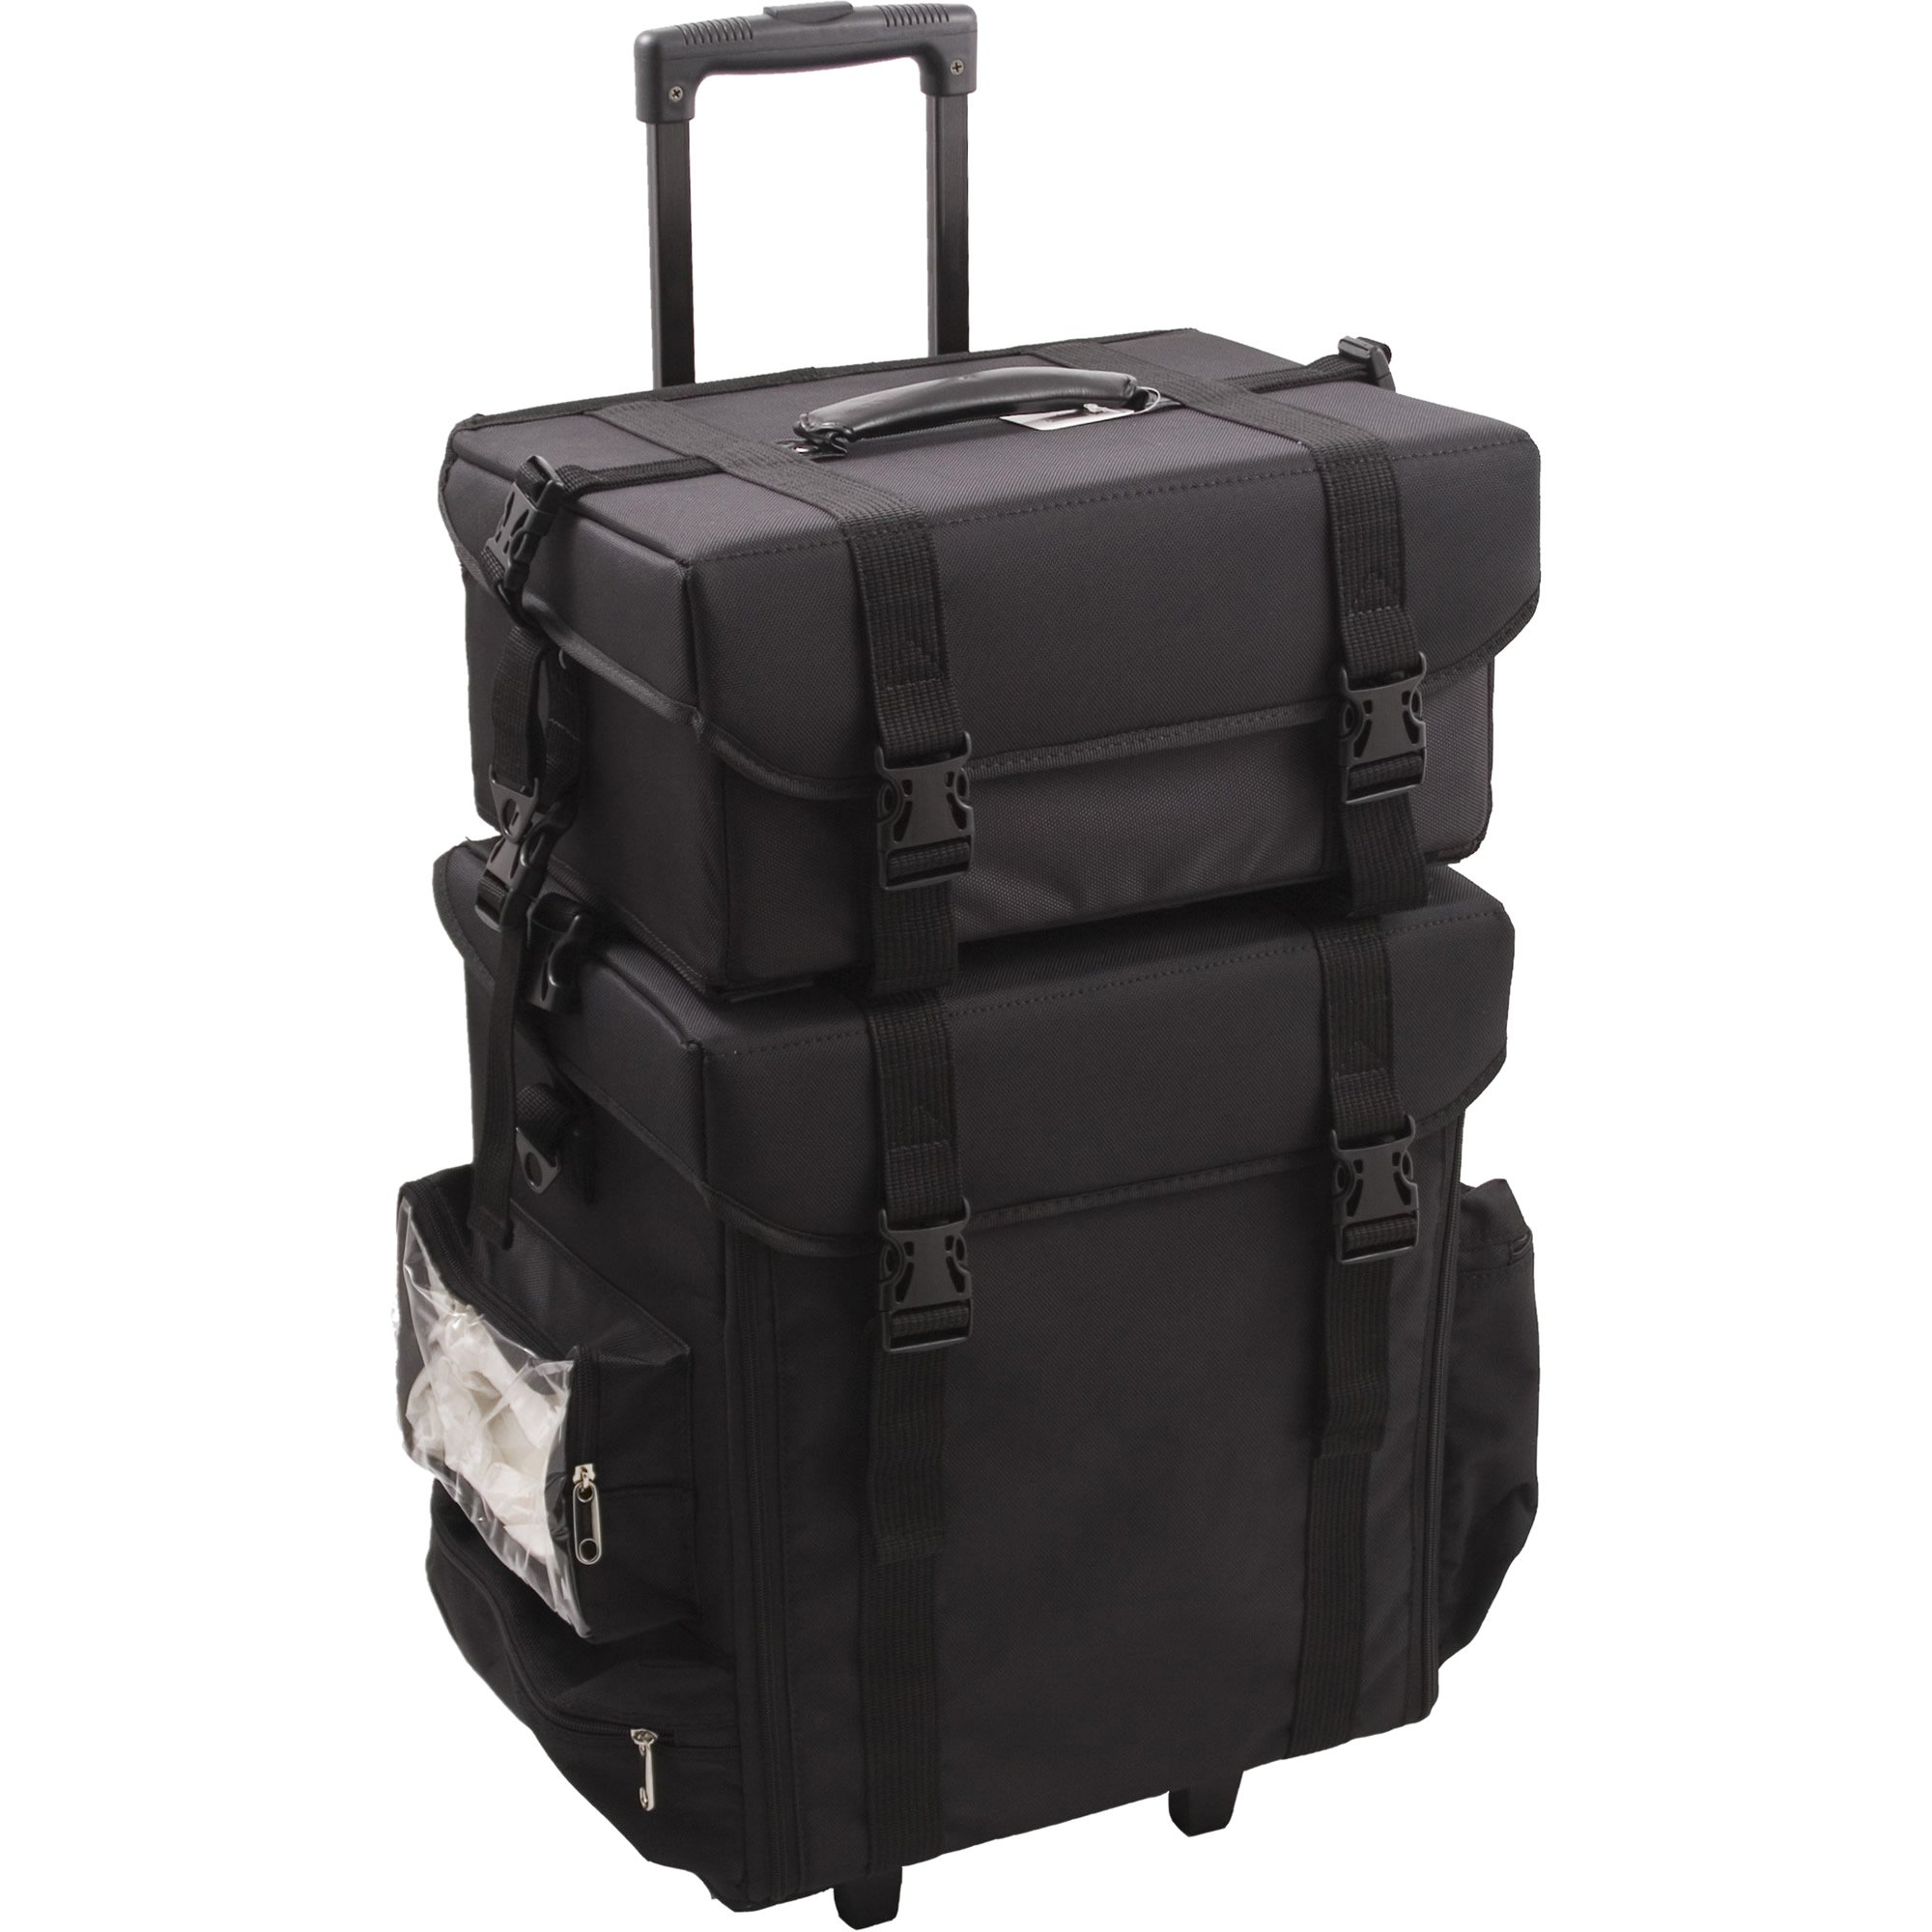 Sunrise T5271 2-in-1 Soft Sided Professional Rolling Trolley Makeup Artist Cosmetic Case, Black Nylon